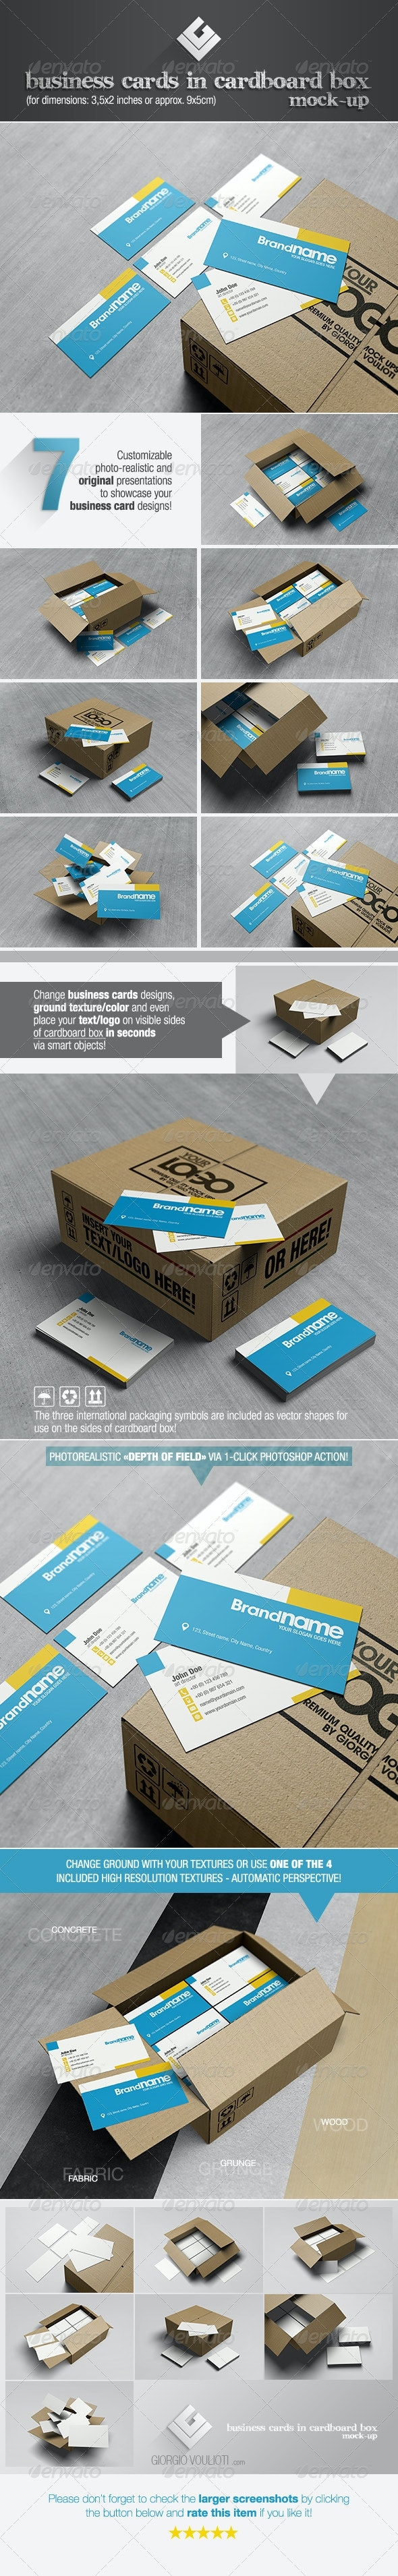 Business Cards in Cardboard Box Mock-Up - Business Cards Print